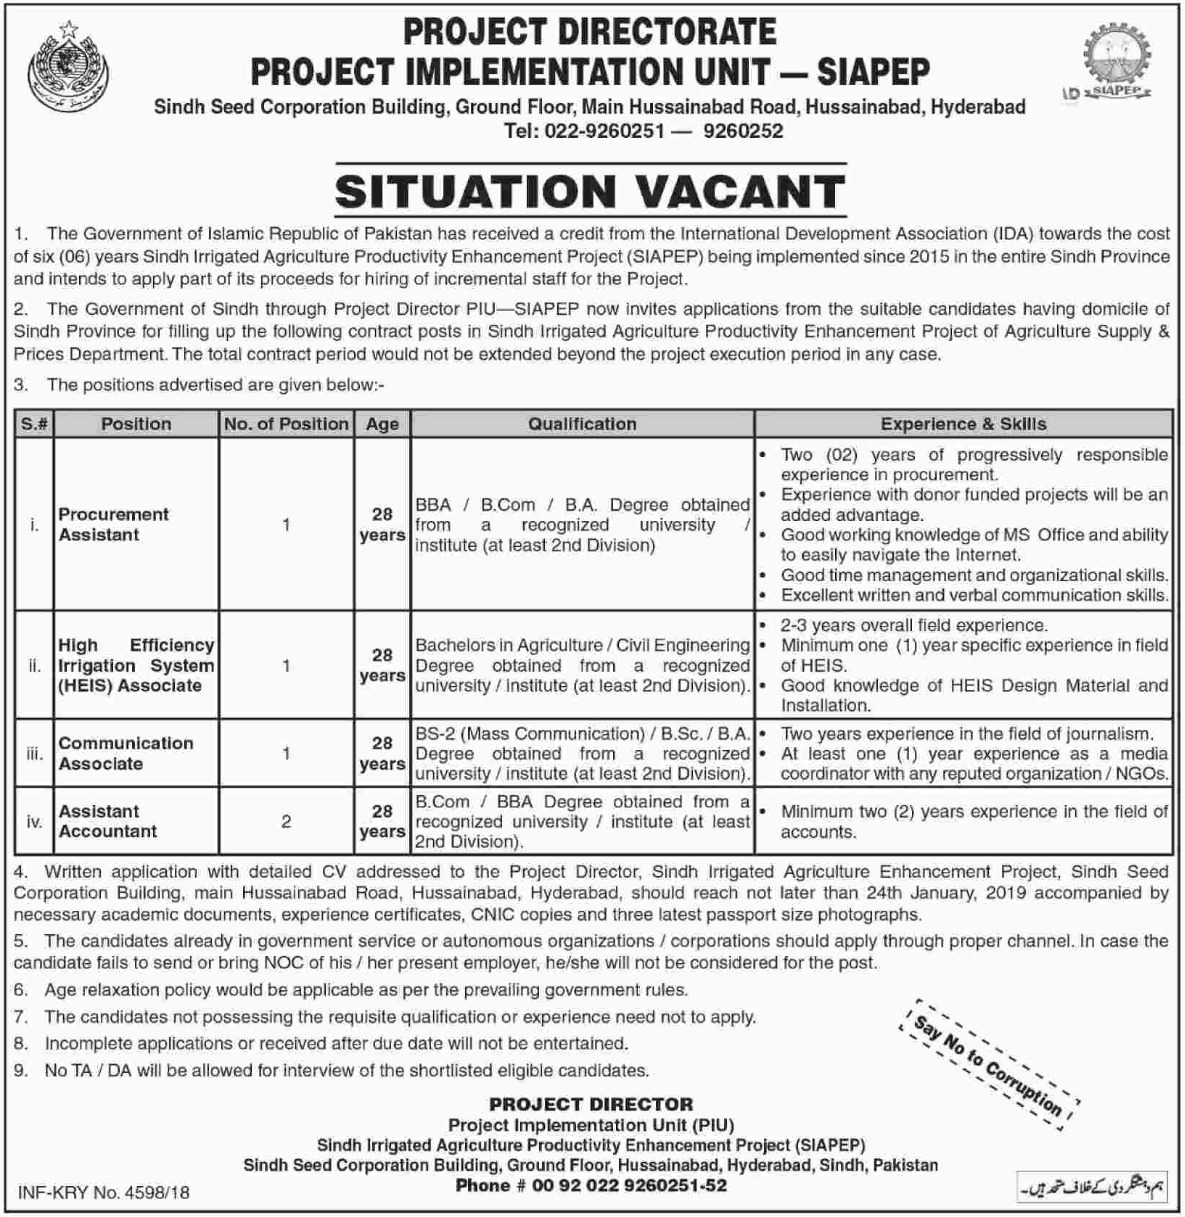 SIAPEP Hyderabad Jobs 2019 Project Implementation Unit